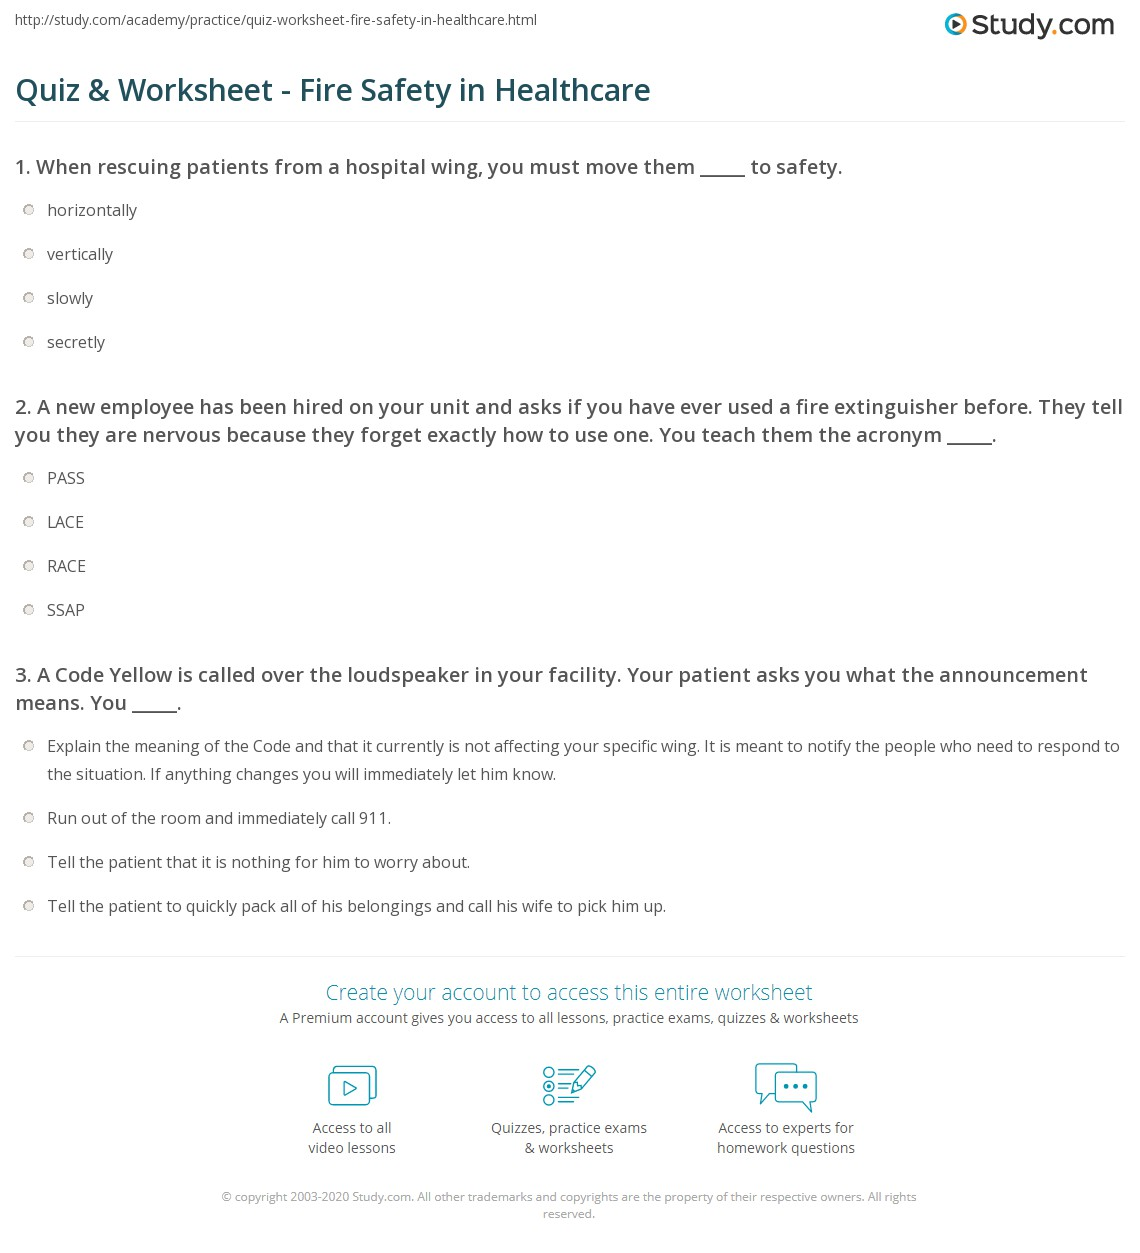 Worksheets Fire Safety Worksheets quiz worksheet fire safety in healthcare study com a new employee has been hired on your unit and asks if you have ever used extinguisher before they tell are nervous because t